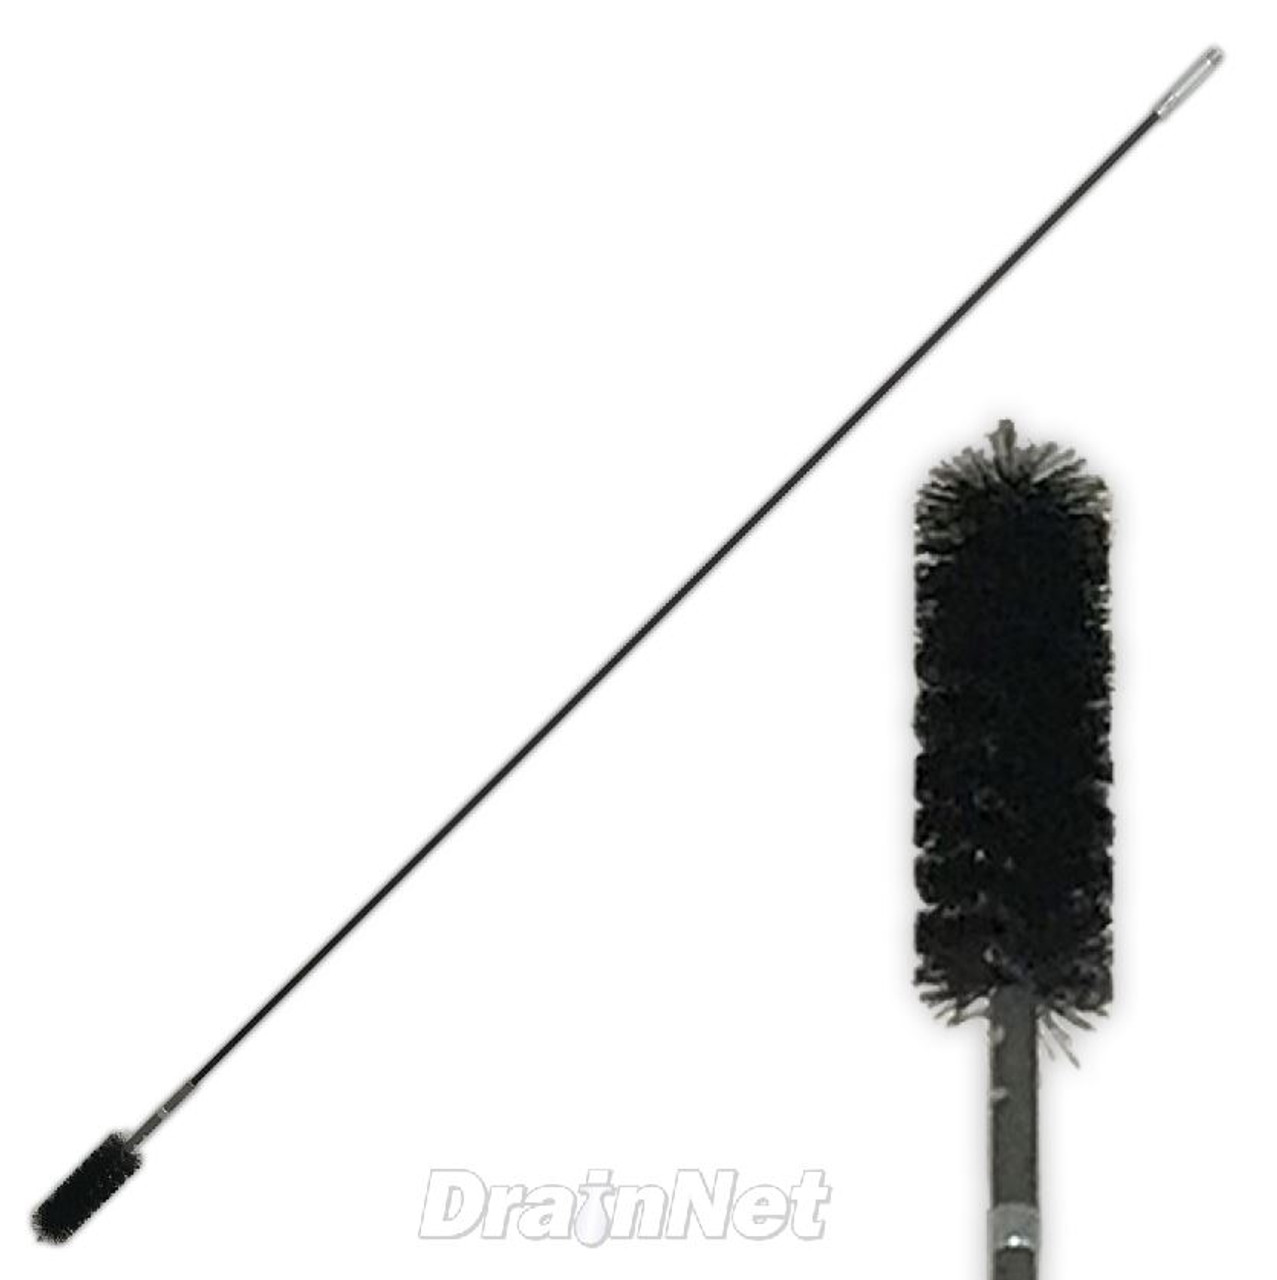 DipStick Pro Cleaning Brush - 6'